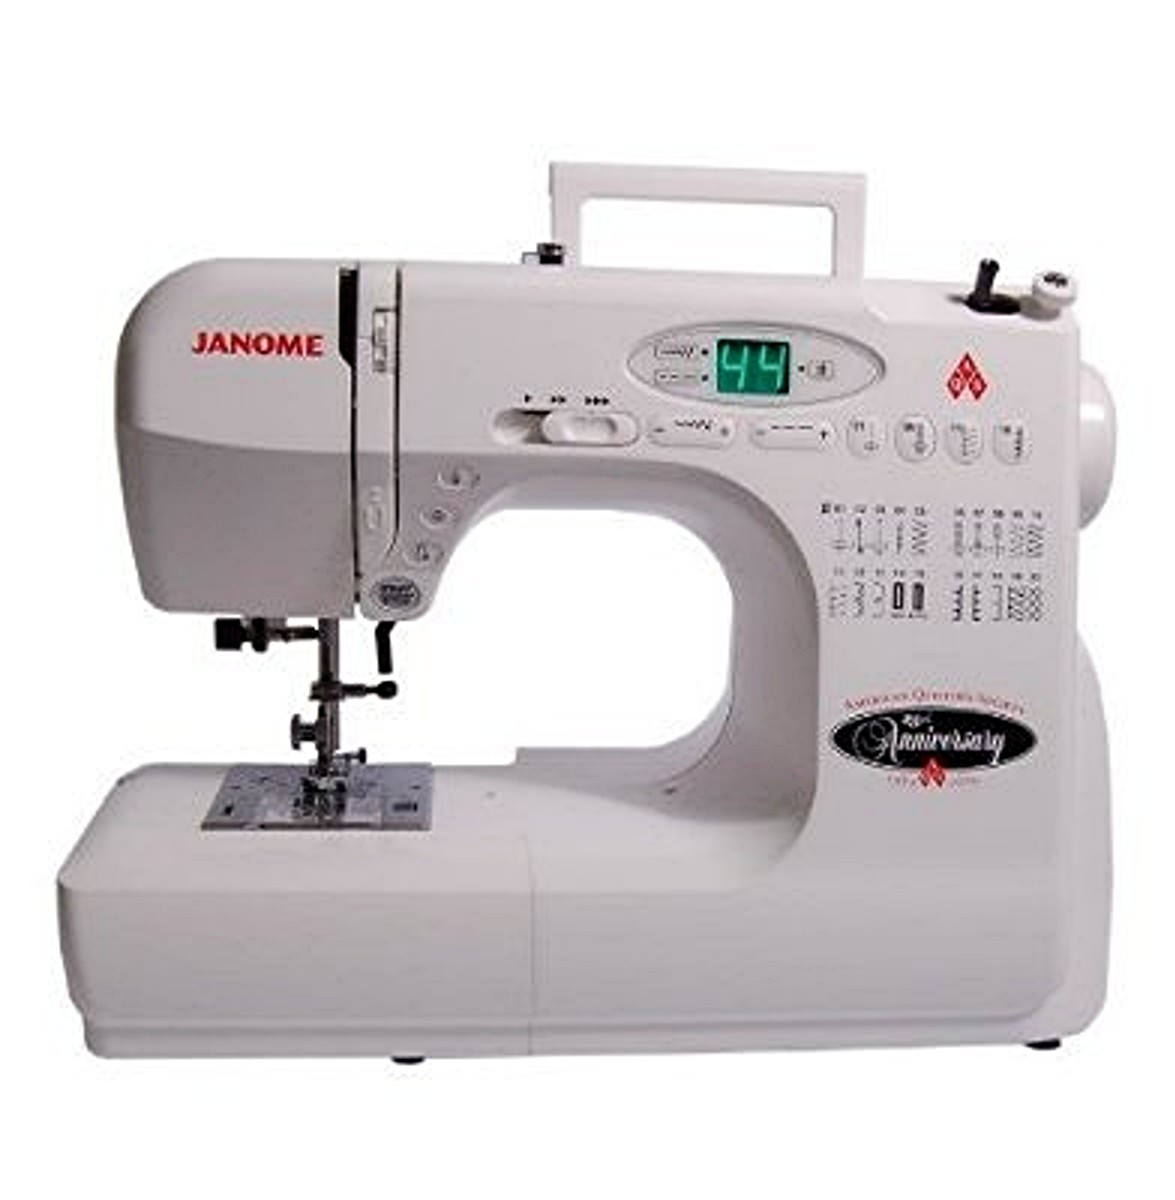 quilting sewing machine comparison